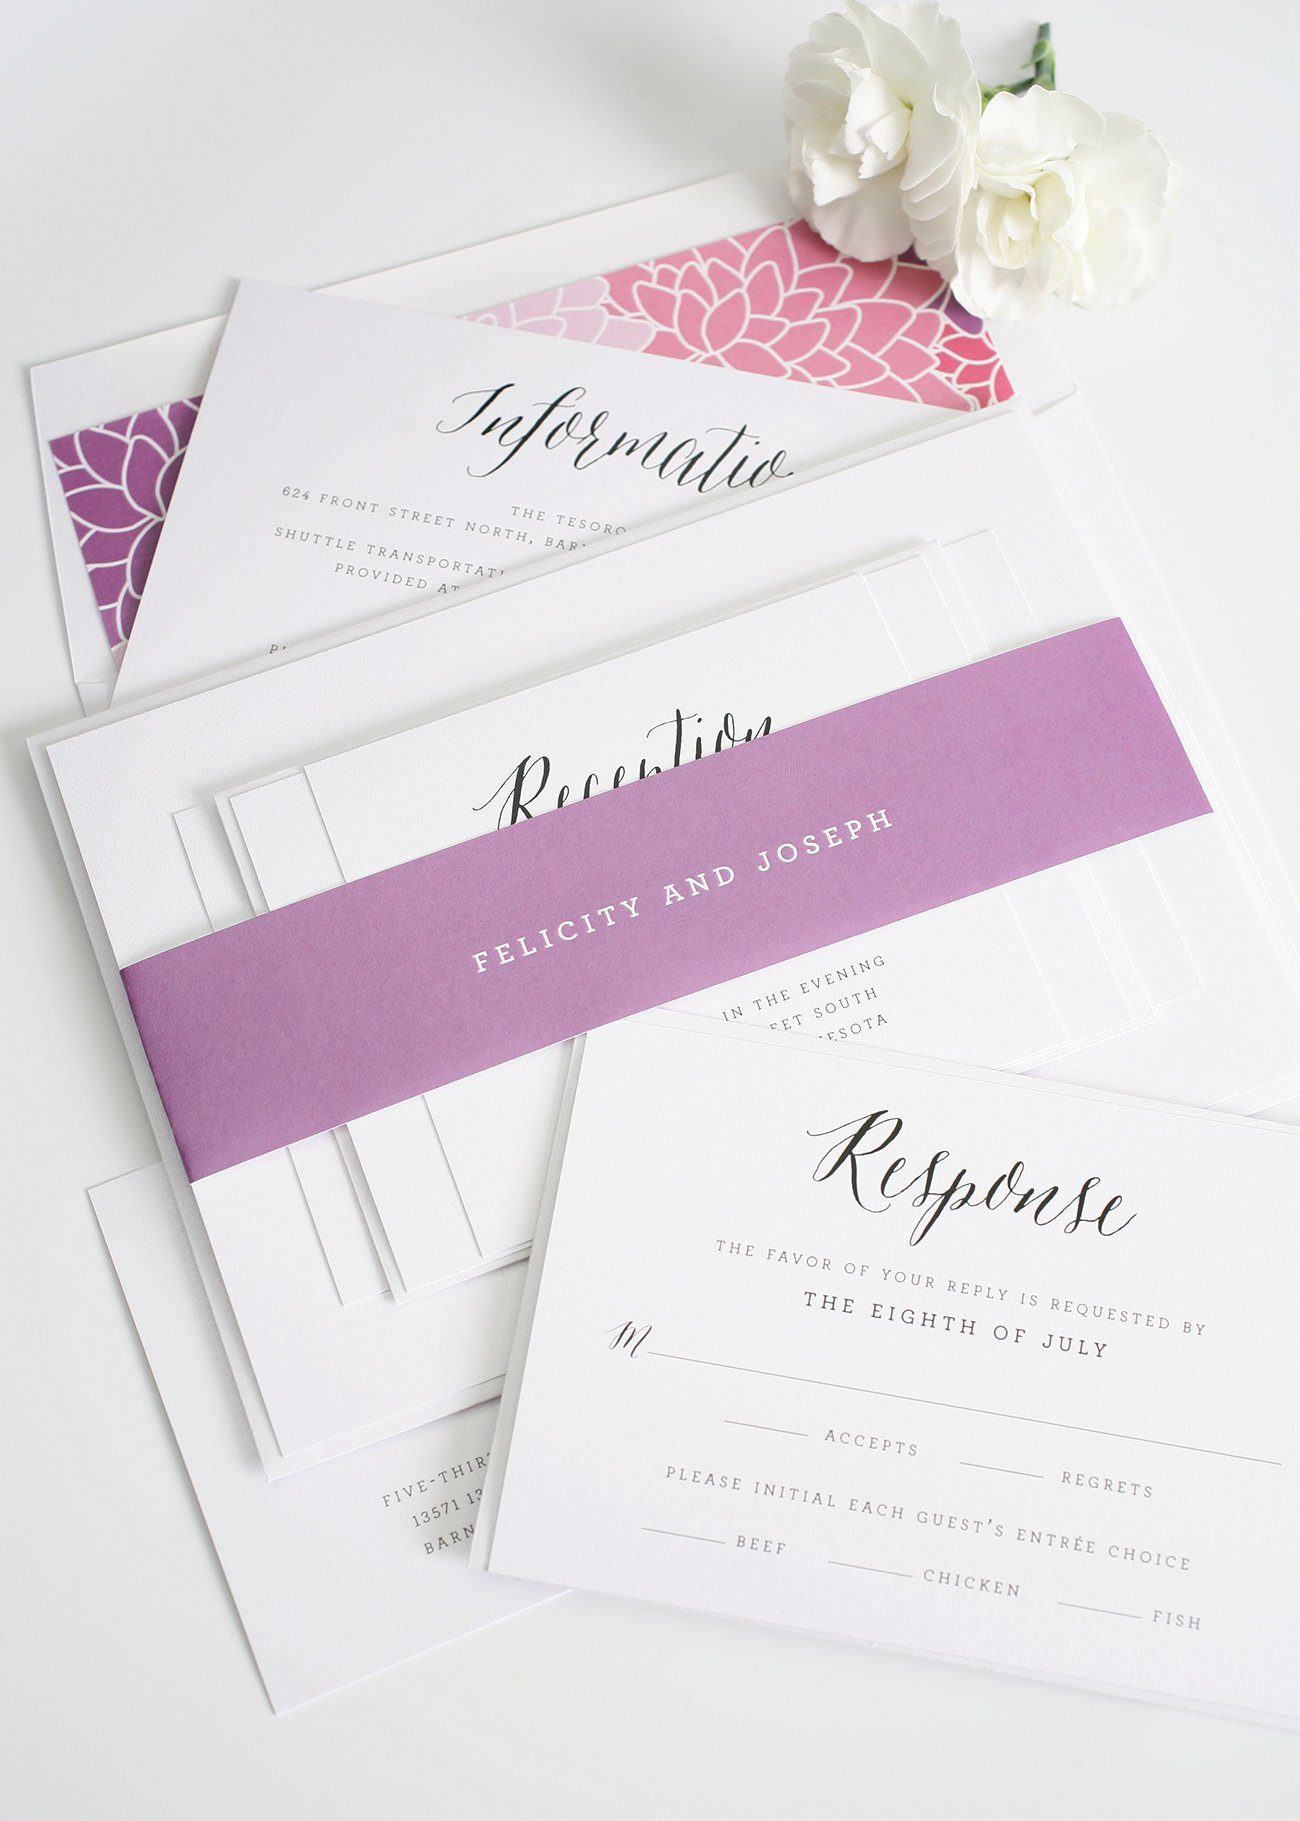 Whimsical Calligraphy wedding invitations with floral